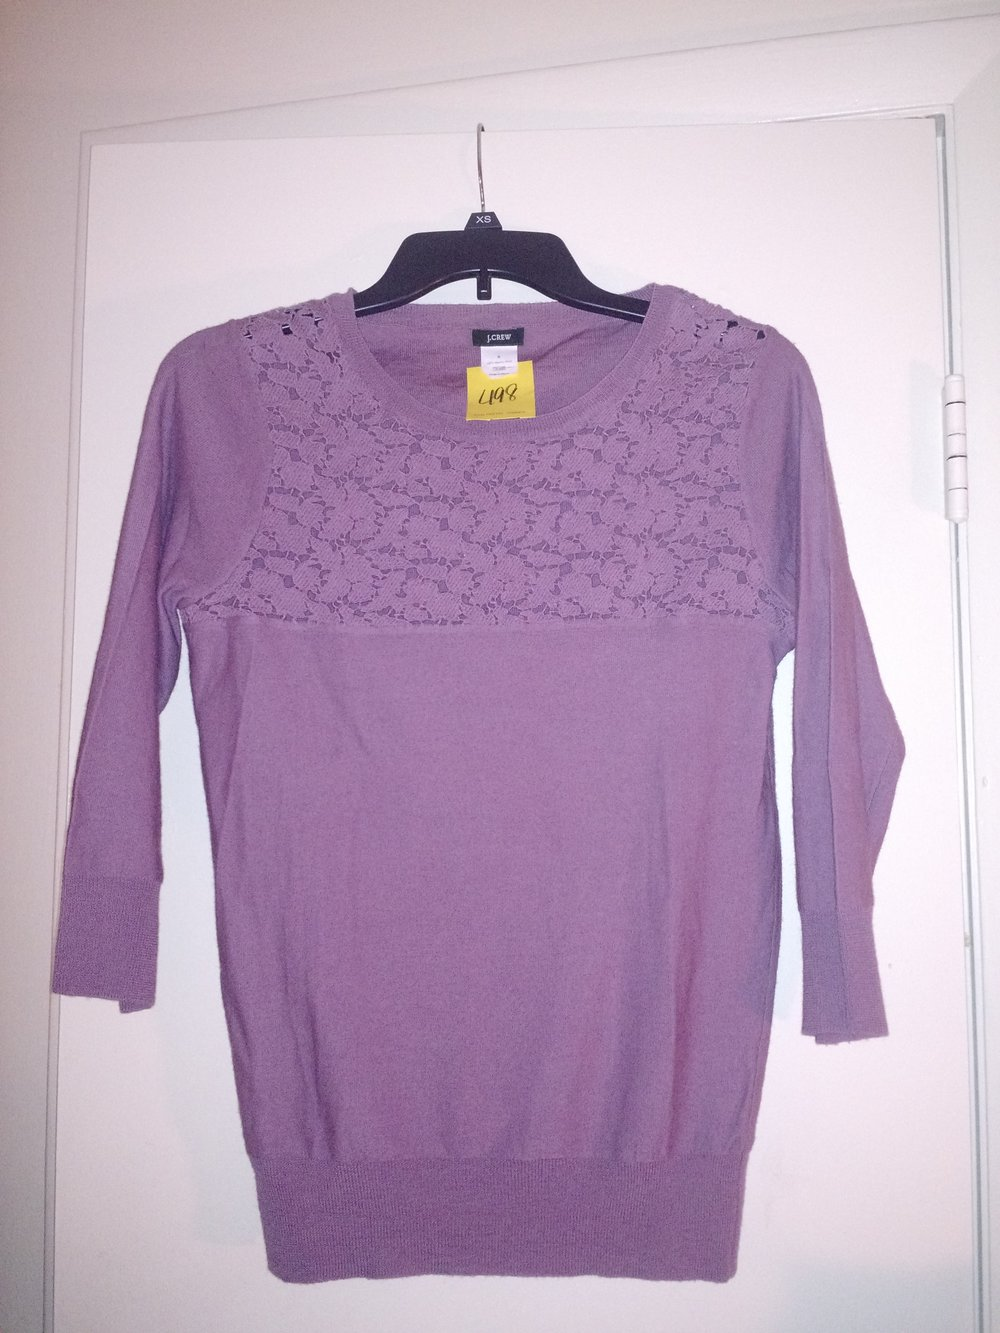 Another 3/4 top. I love the lace detailing and of course it's my favorite color